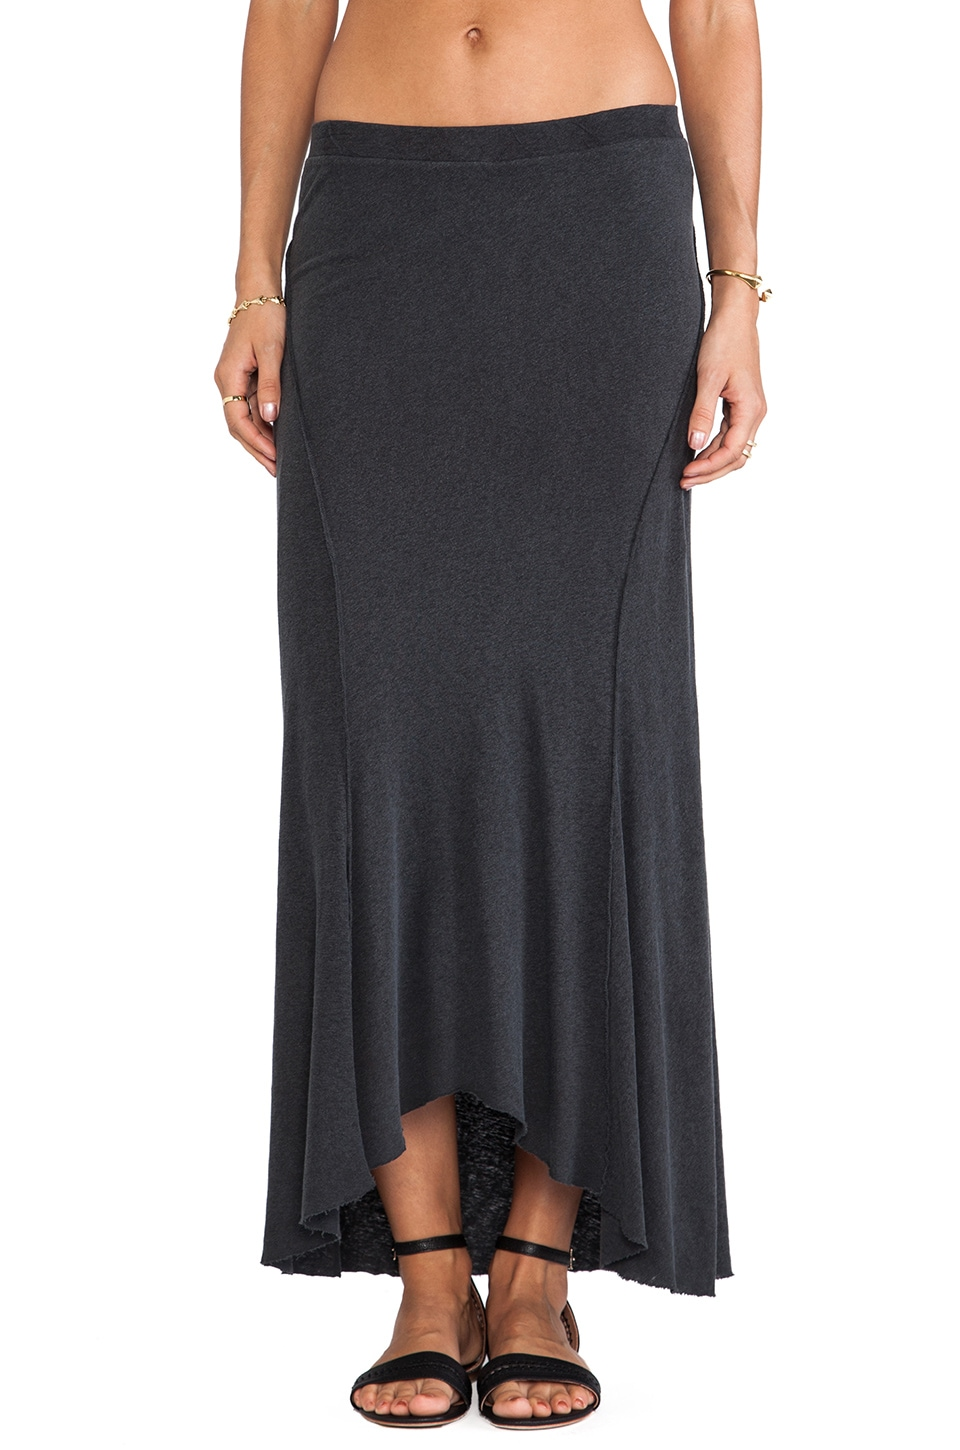 James Perse Inside Out Ellipse Skirt in Carbon